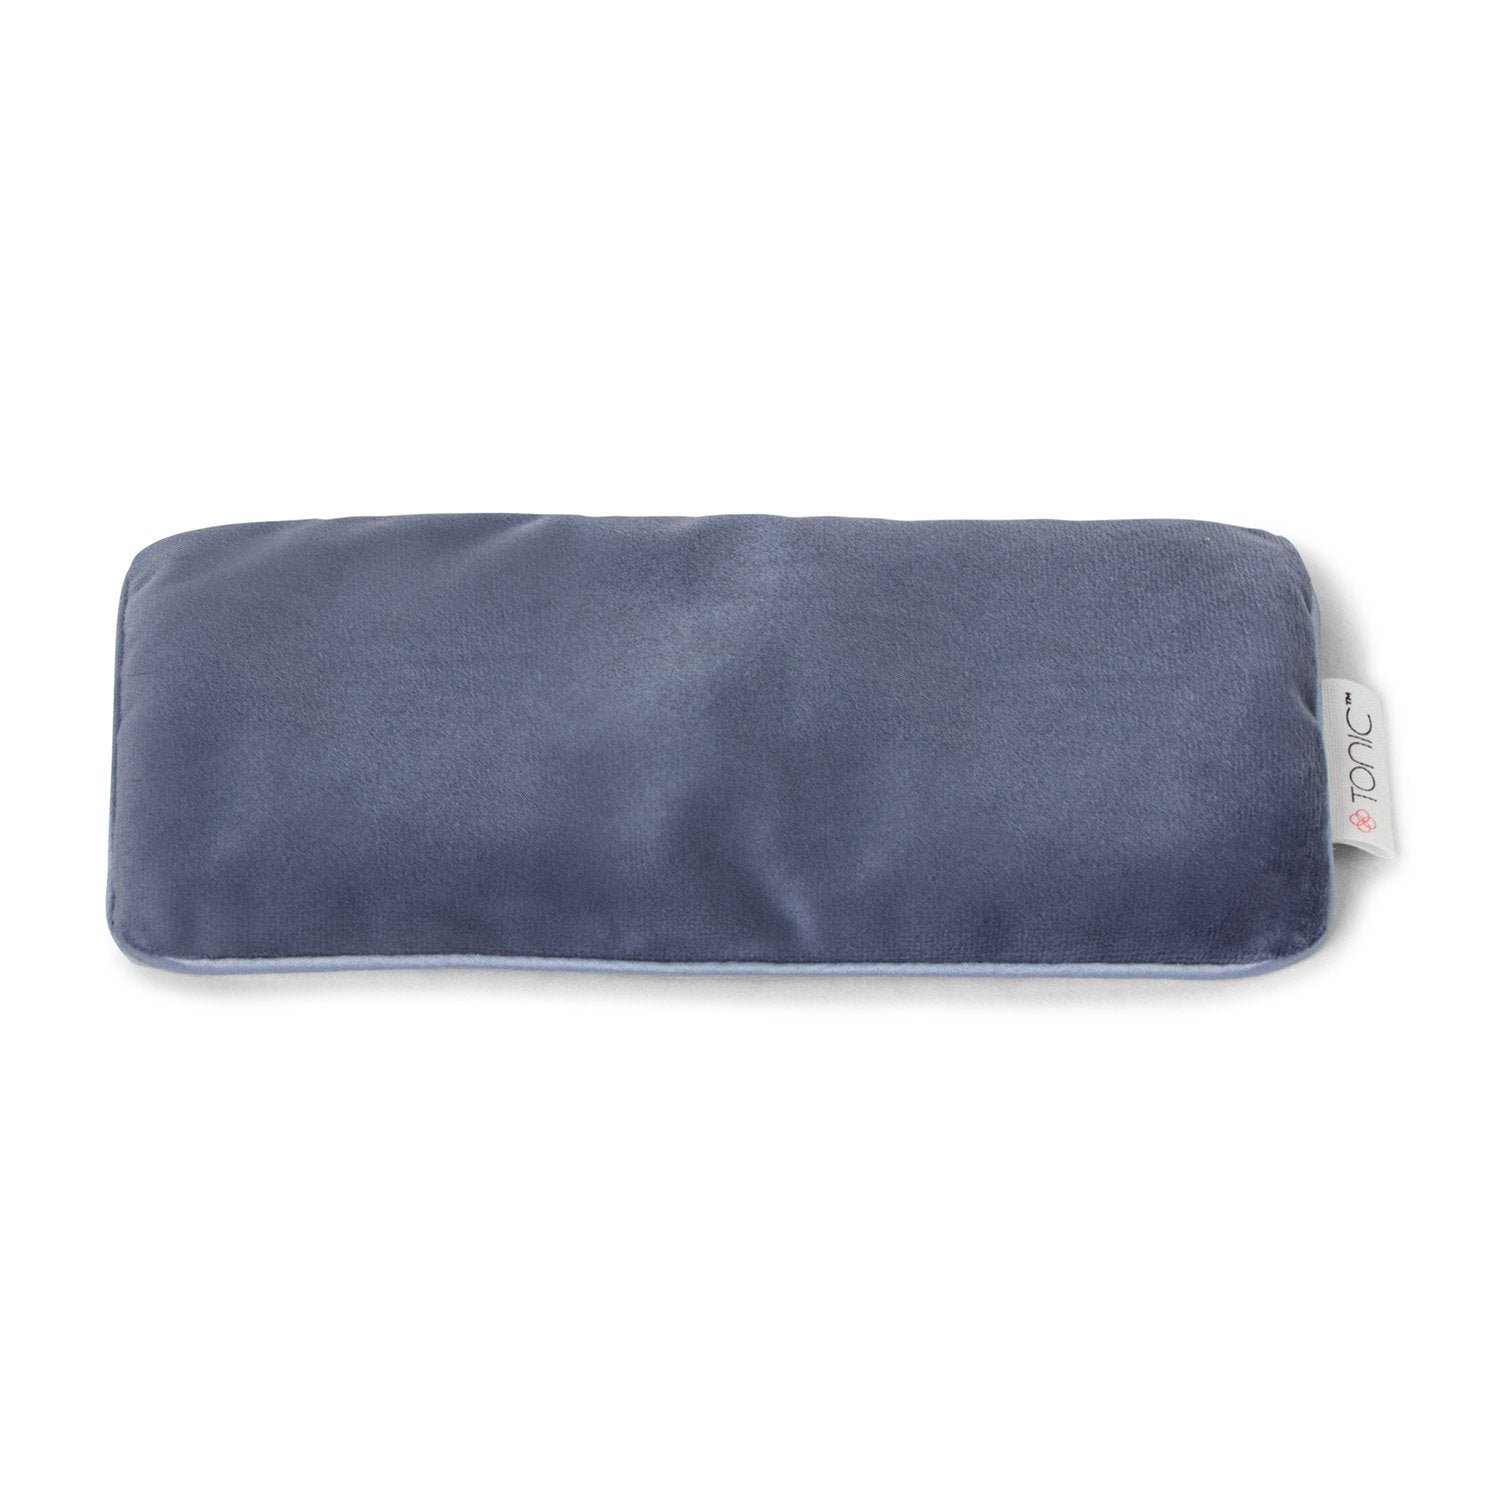 Luxe Velvet Eye Pillow Storm